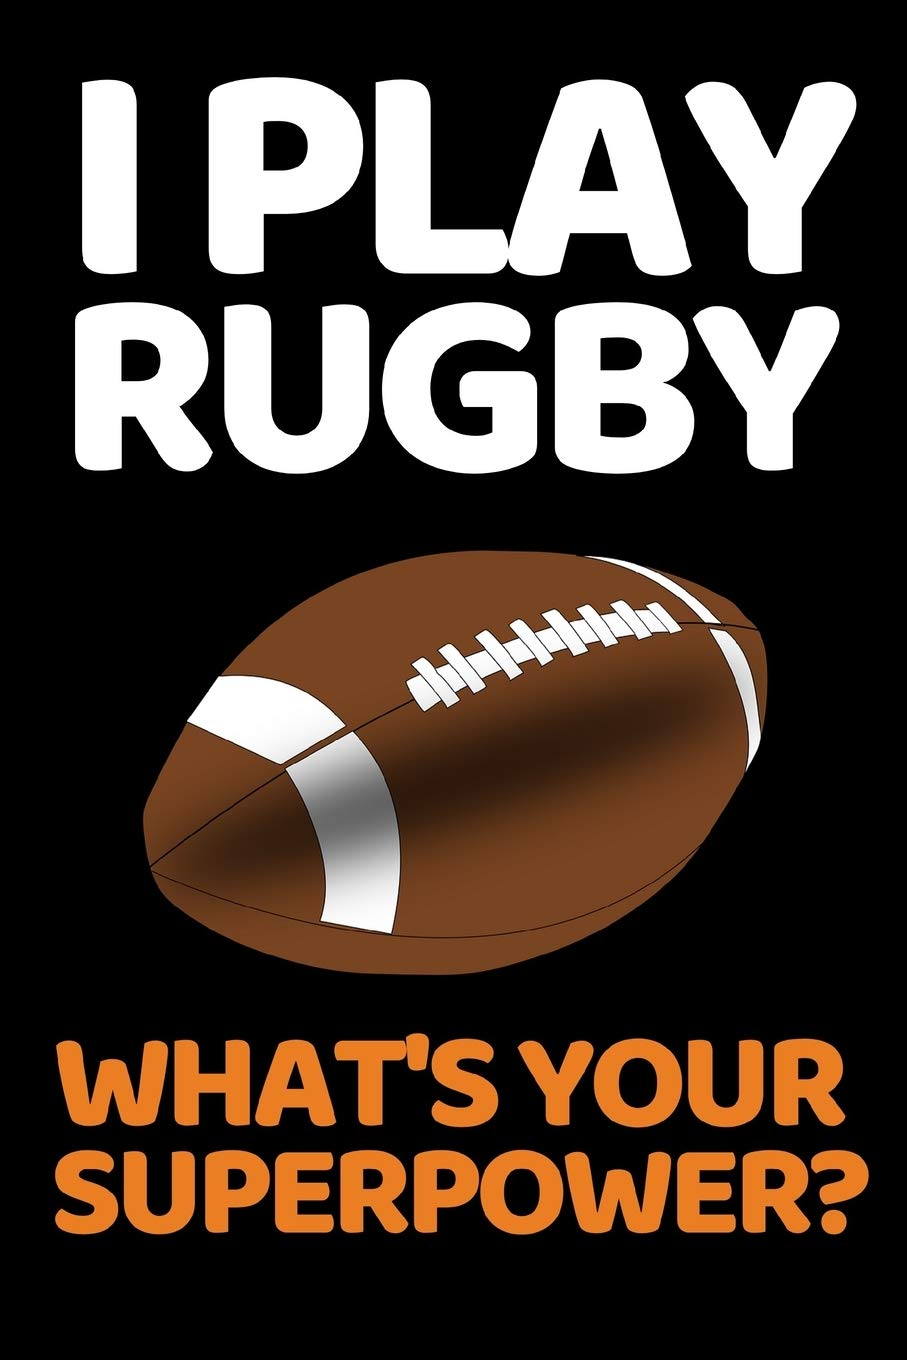 I Play Rugby What S Your Super Power Funny Rugby Notebook Journal 6 X 9 Rugby Players Gifts For Birthday Or Christmas Biveinis Paulius 9781699762837 Amazon Com Books